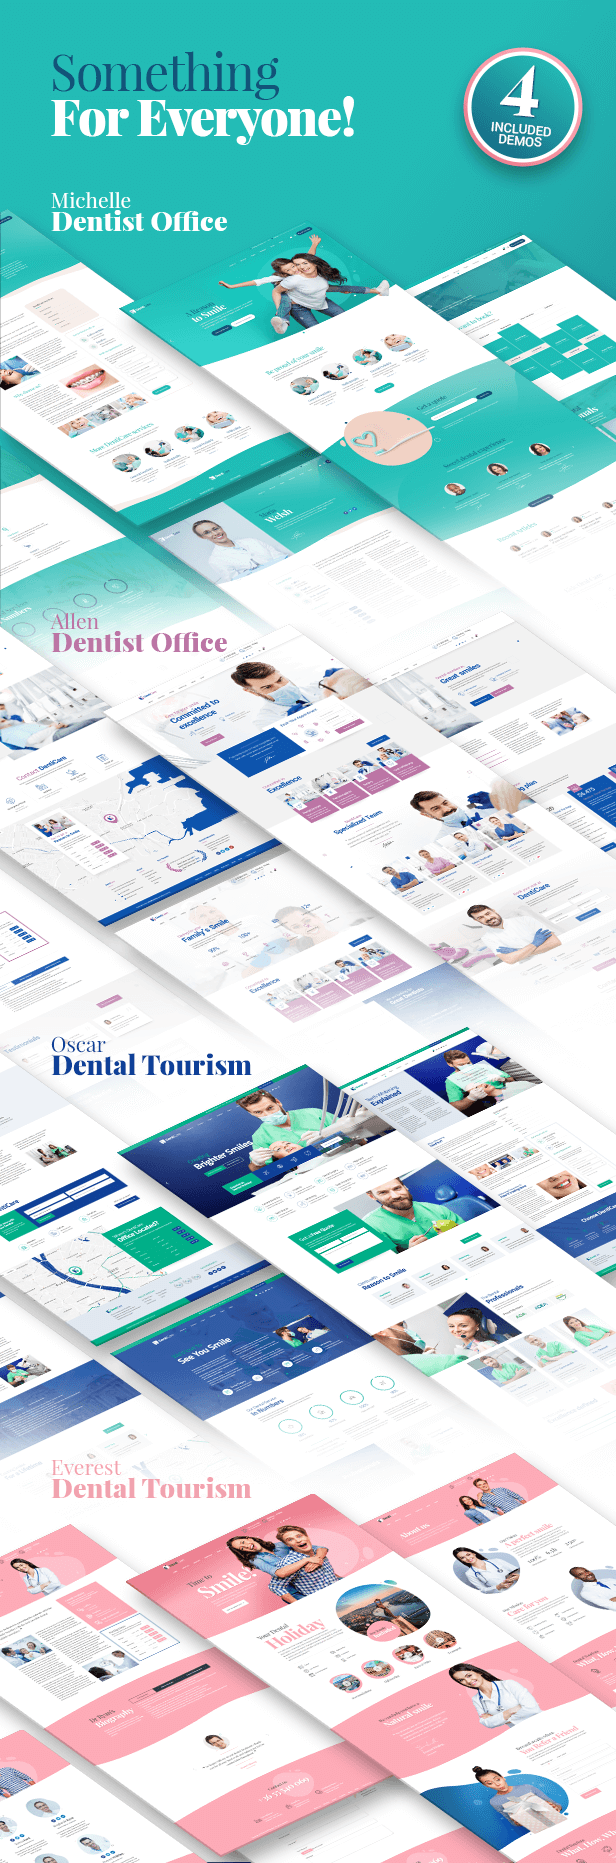 Theme-Info-004 DentiCare - WordPress Theme for Dentist & Dental Clinic theme WordPress